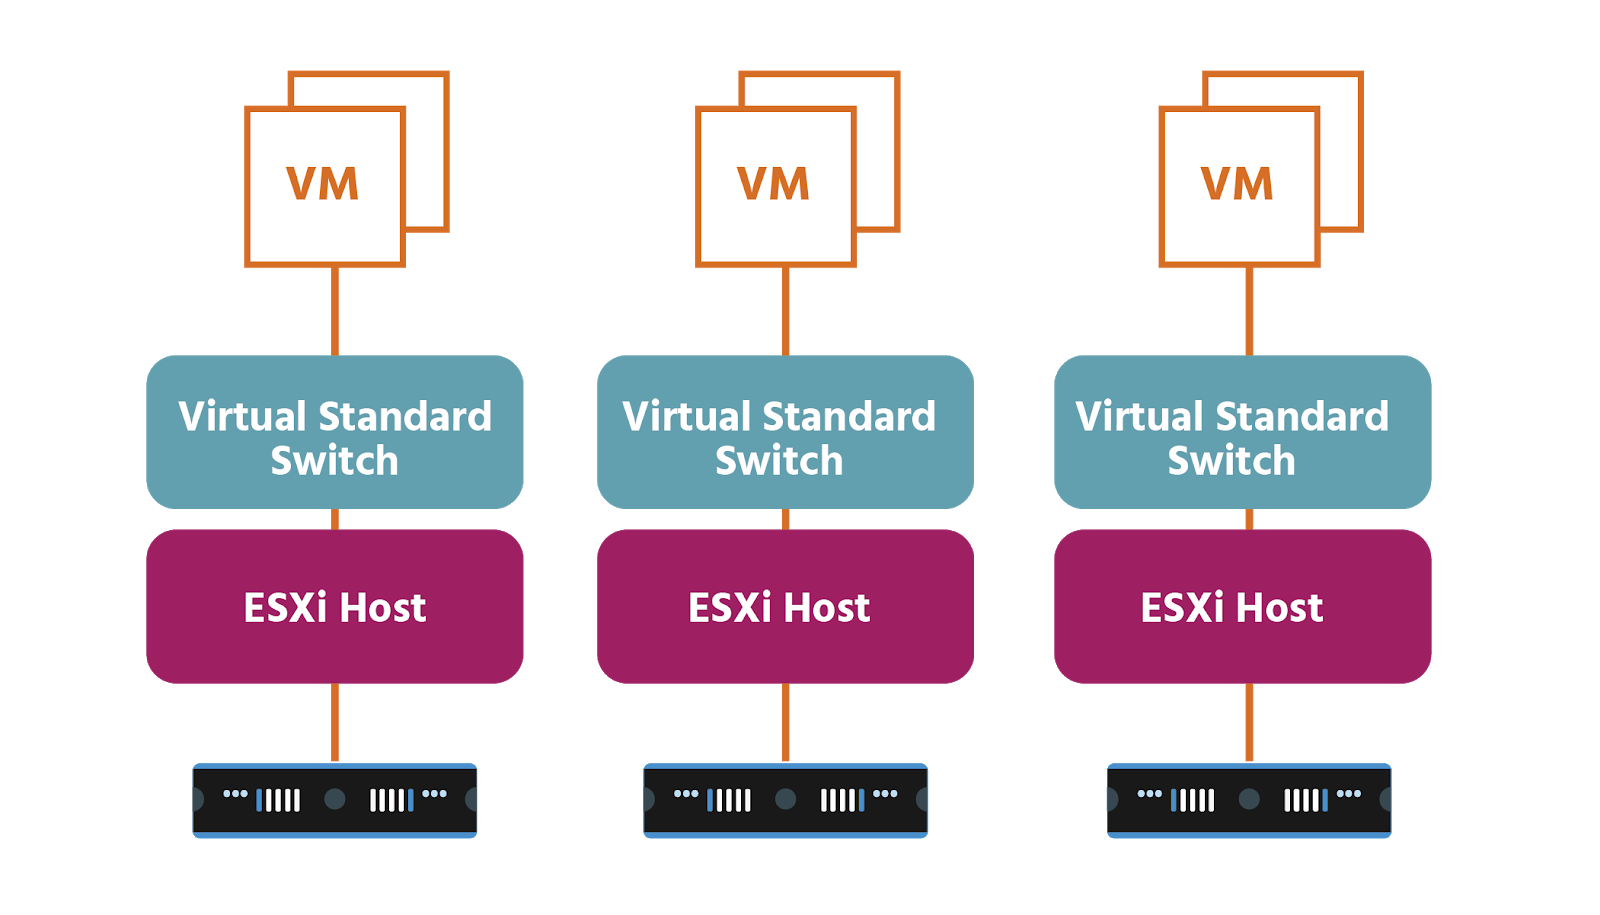 Three stacks each contain two VMs above a virtual standard switch above an ESXi host above a server